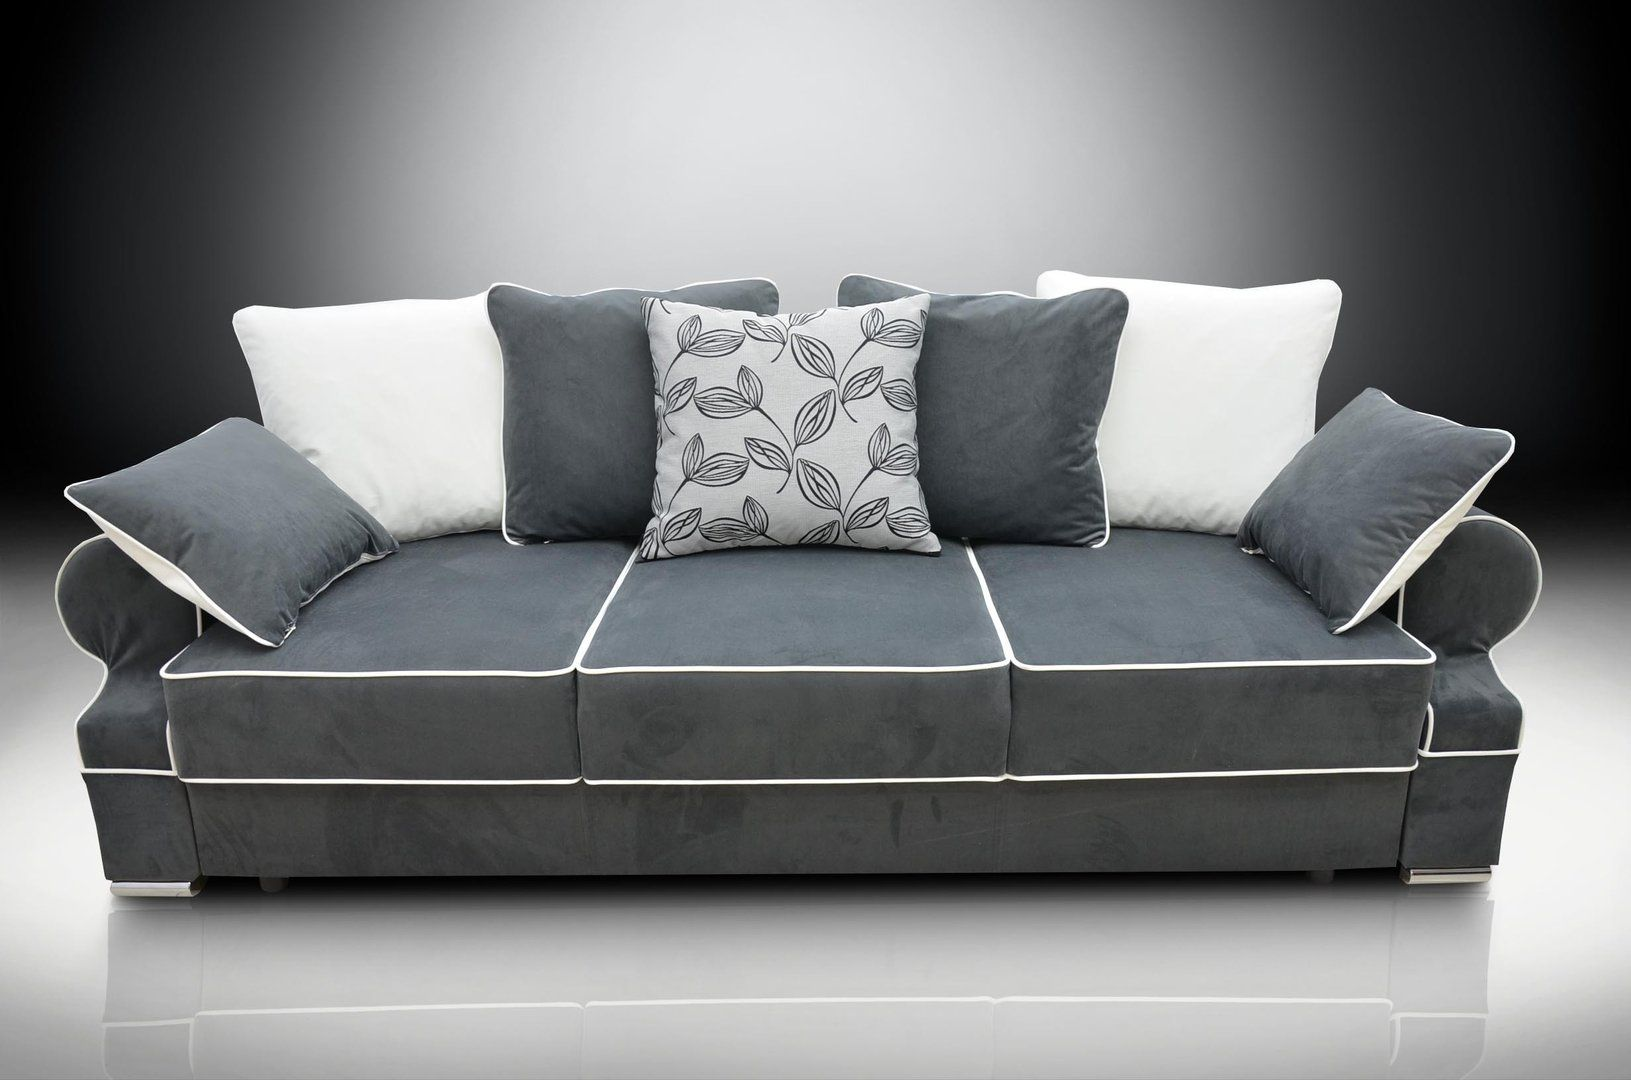 3 Seater Sofa Beds In 2018 Elegance Comfort And Beauty With Magical Functionality 3 Seater Sofa Bed 3 Seater Sofa Sofa